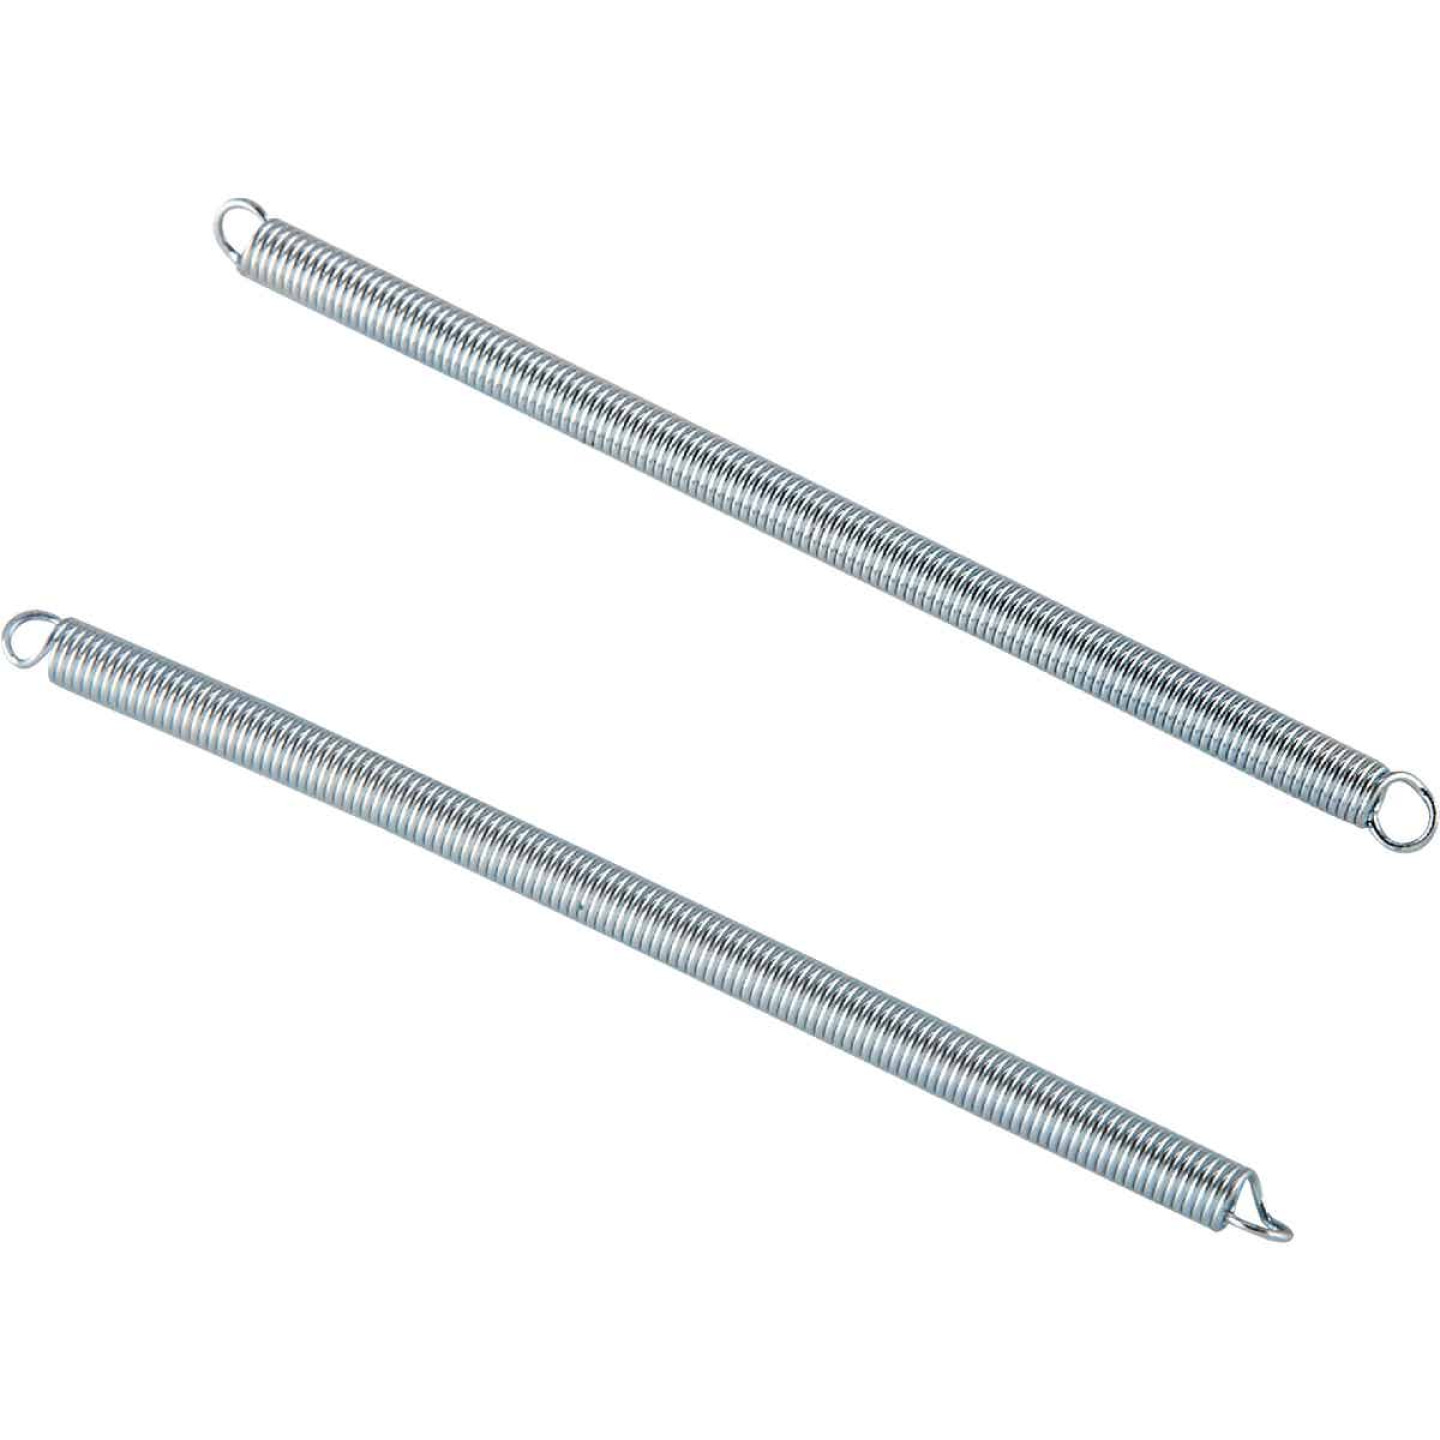 Century Spring 3-3/4 In. x 3/8 In. Extension Spring (2 Count) Image 1